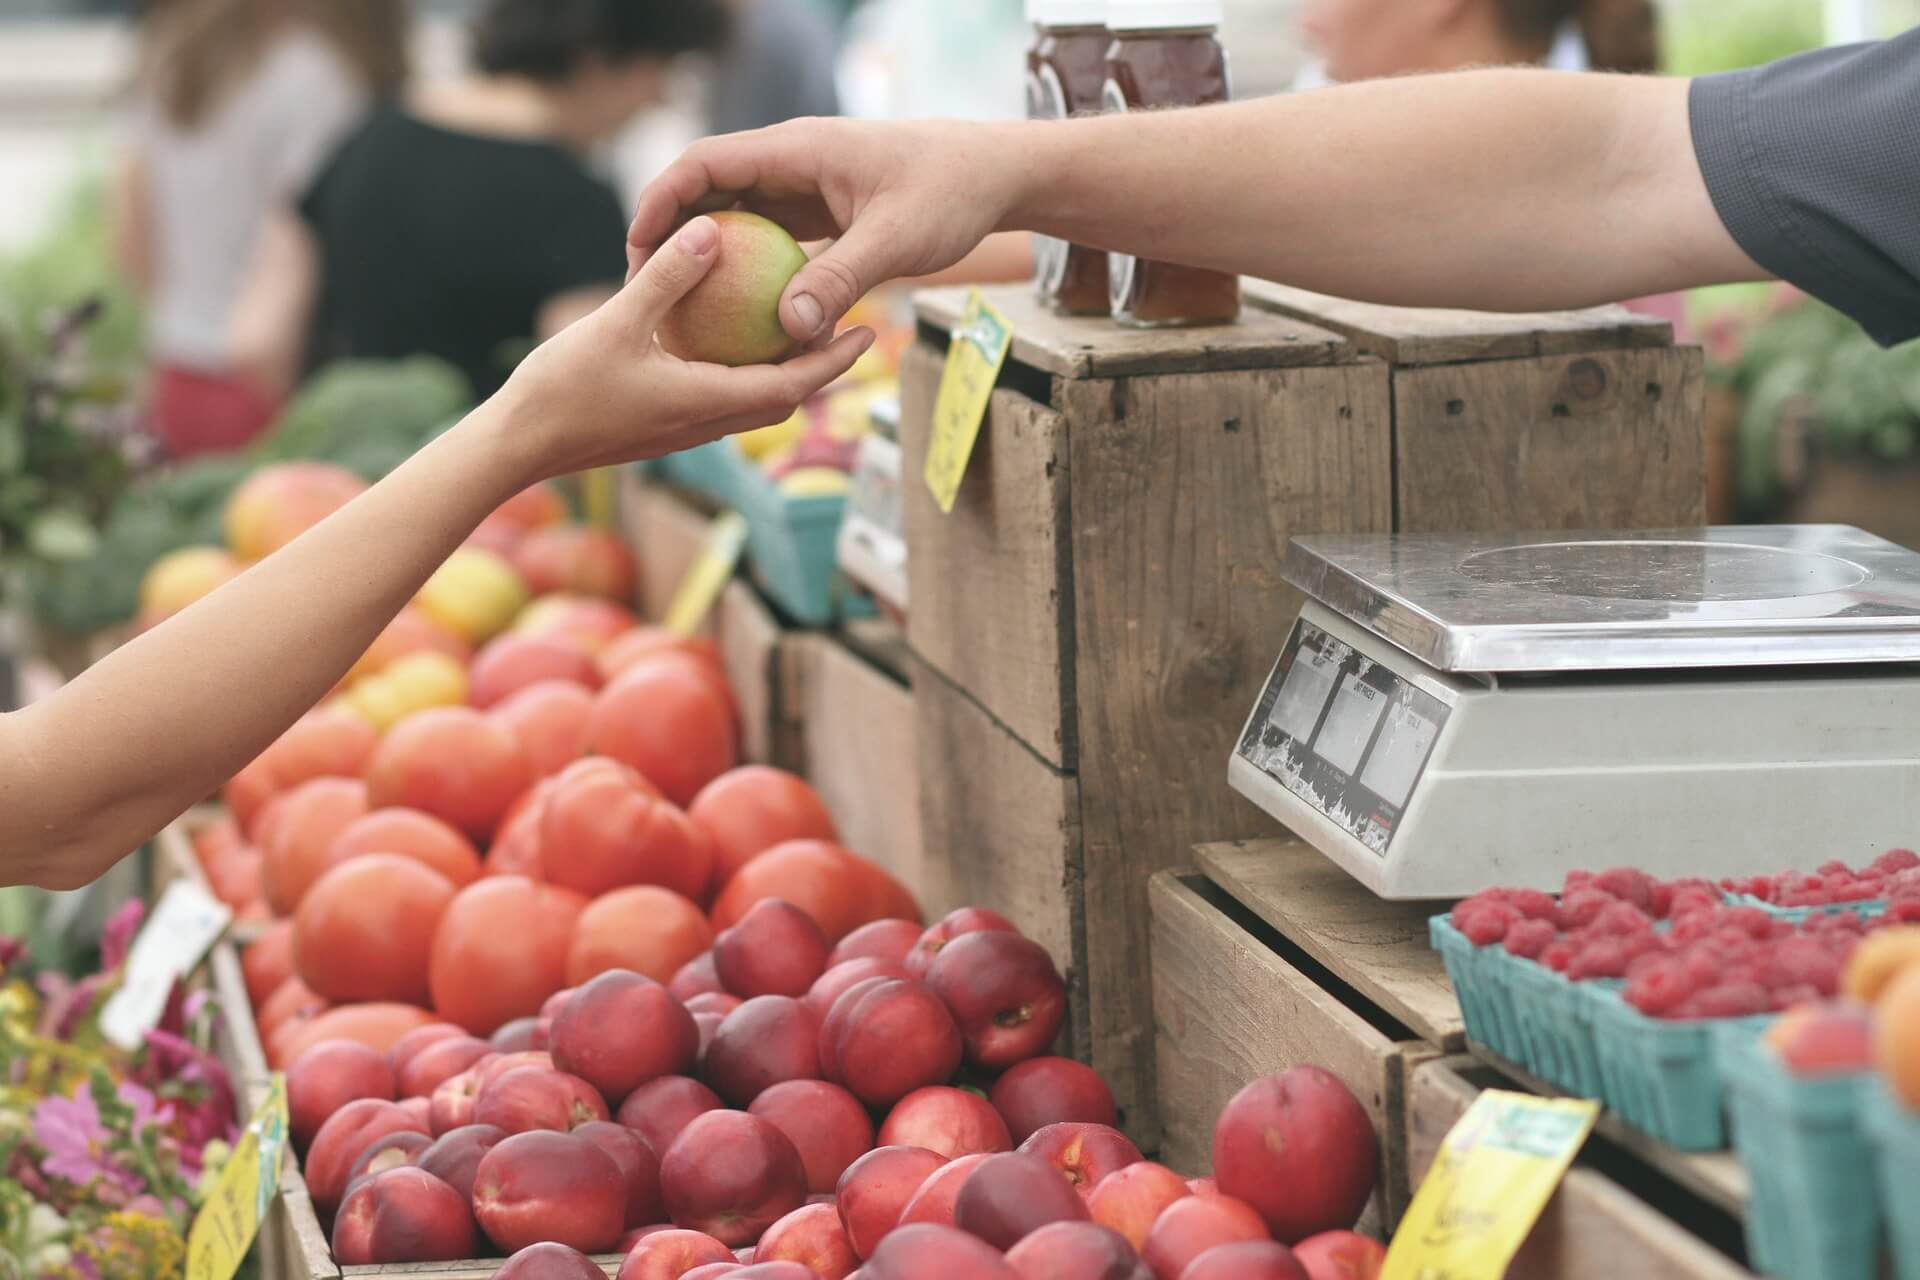 Person Handing Over Apple at a Market, and Another Person Receiving It